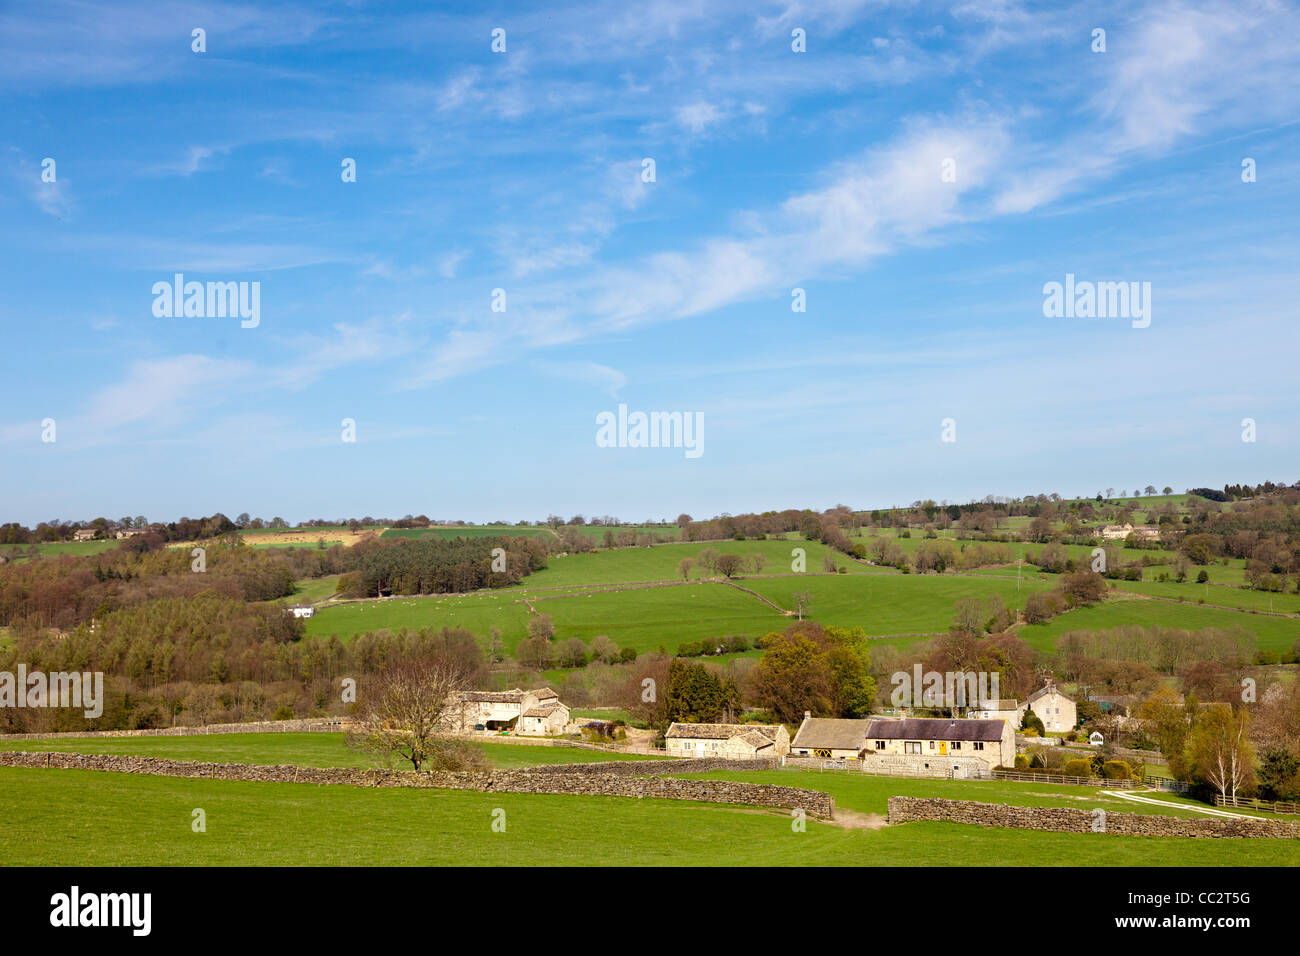 Rural landscape near Birstwith North Yorkshire England - Stock Image